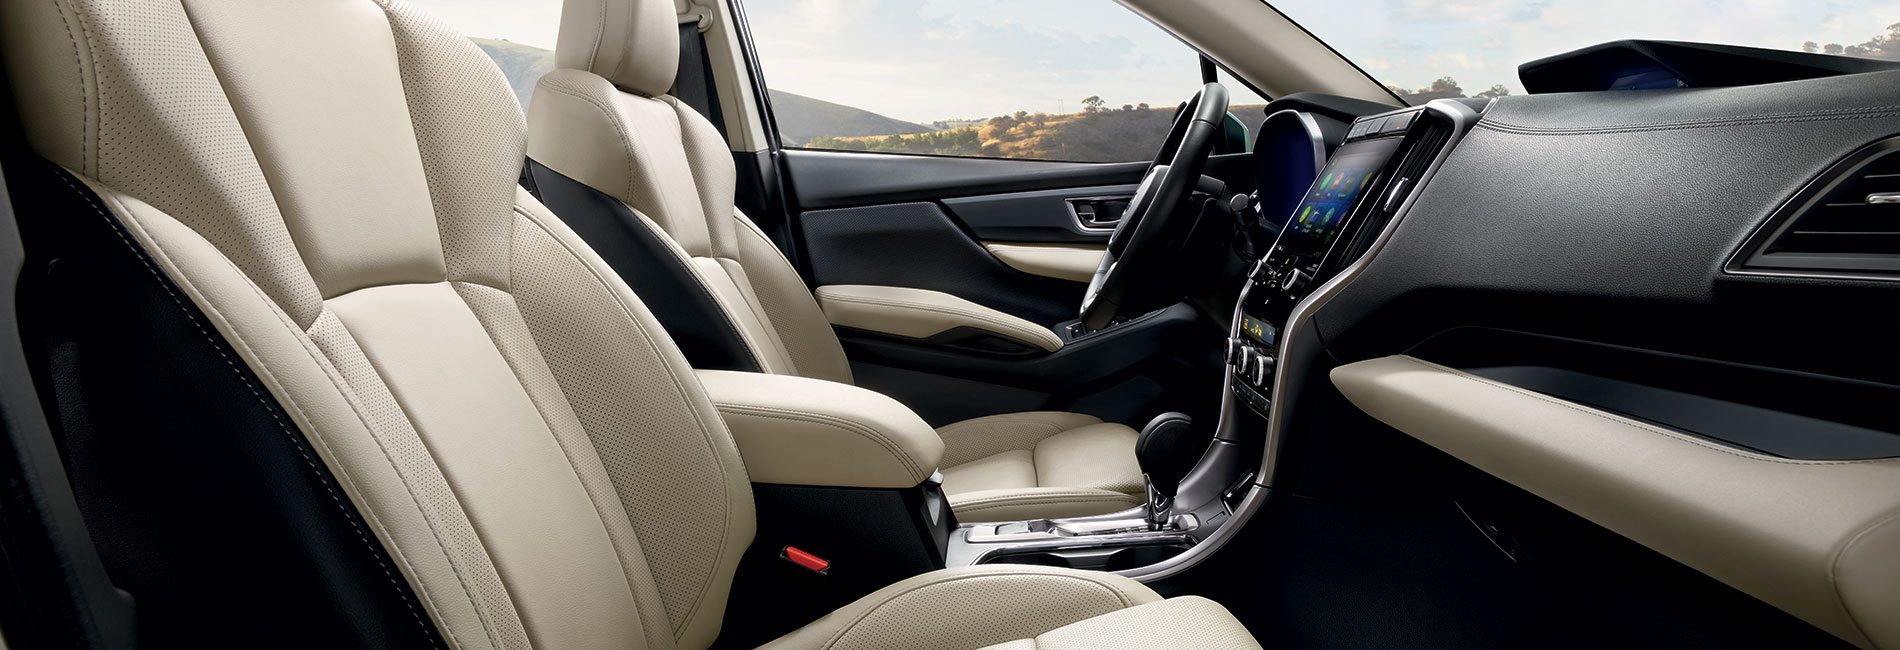 2019 Subaru Ascent Interior Features